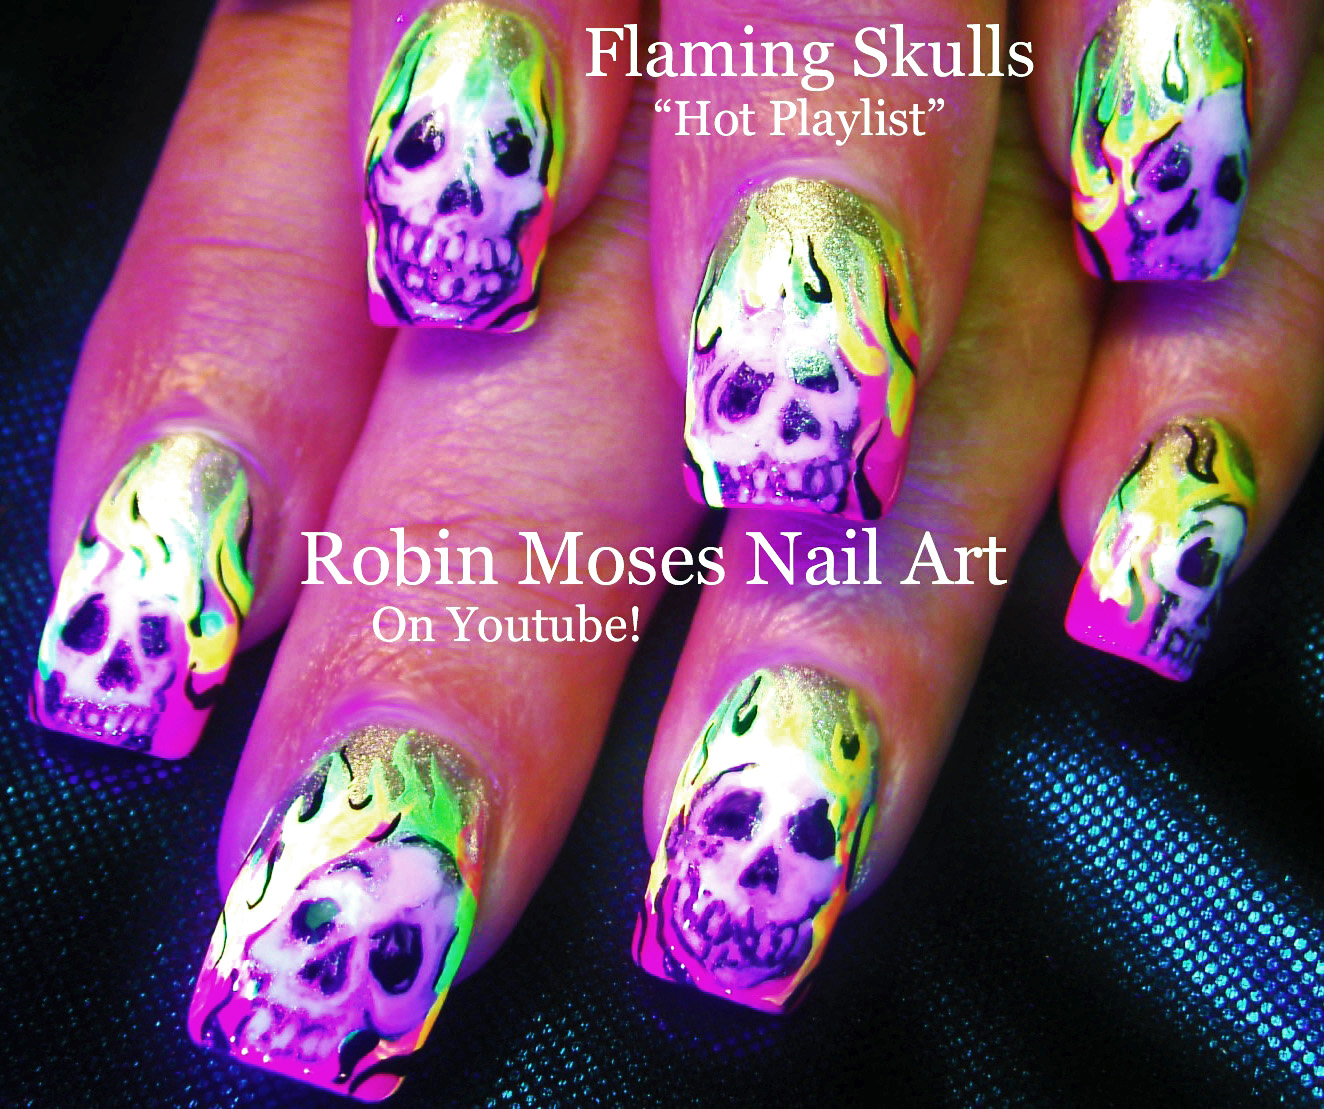 Robin moses nail art neon nails flaming skulls skull nails neon nails flaming skulls skull nails skeleton nails skull art skull design nail art skulls flaming fire glow in the dark nails skull nail prinsesfo Images